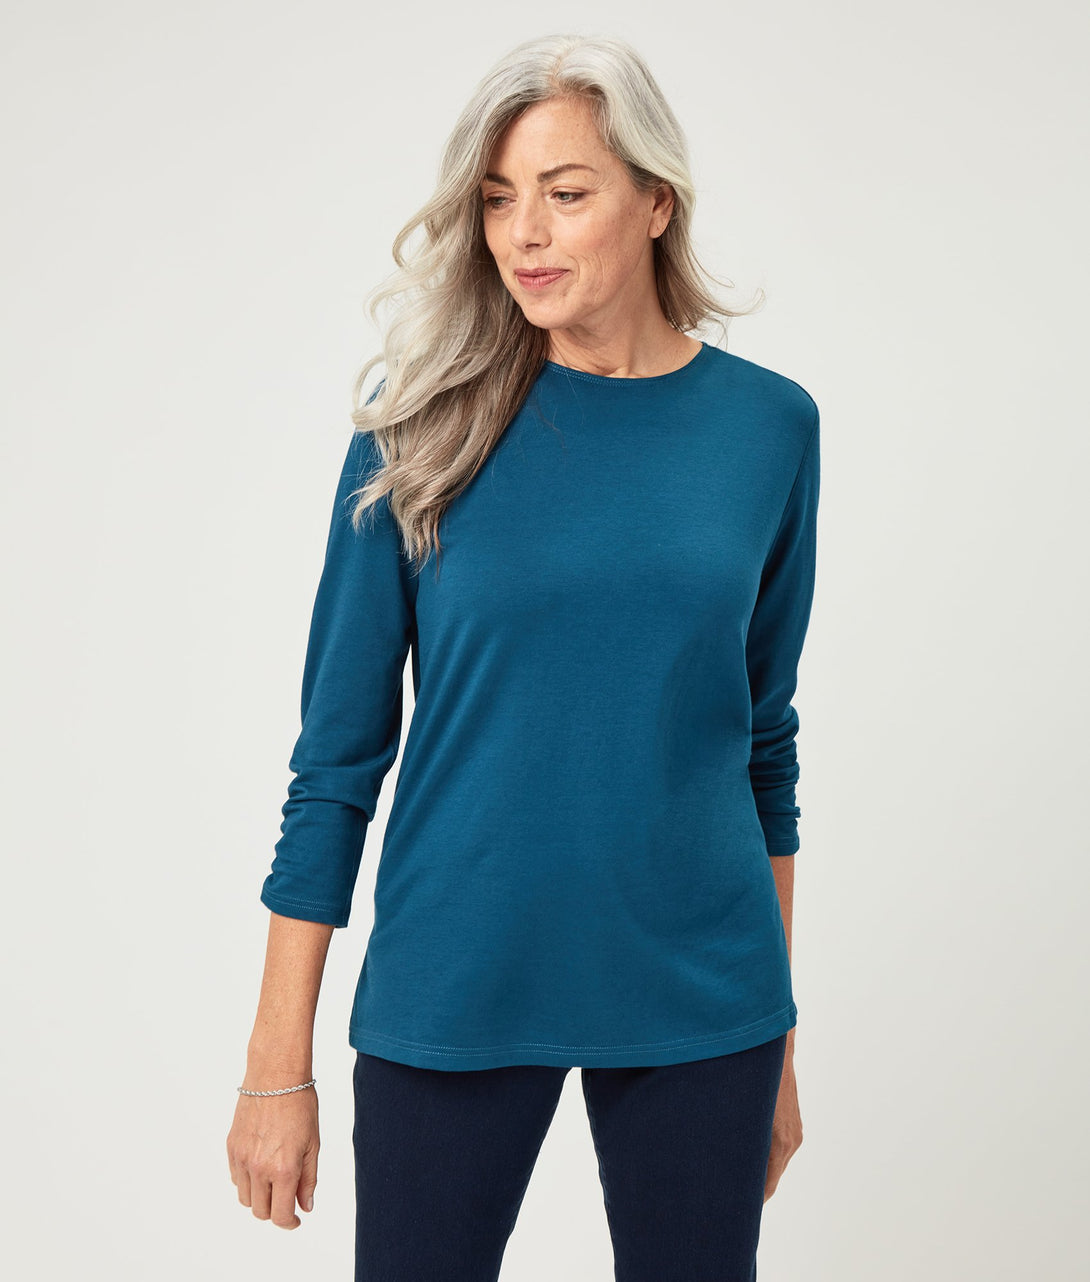 The Bonnie Long Sleeve Cotton Knit Tunic in Blue Opal